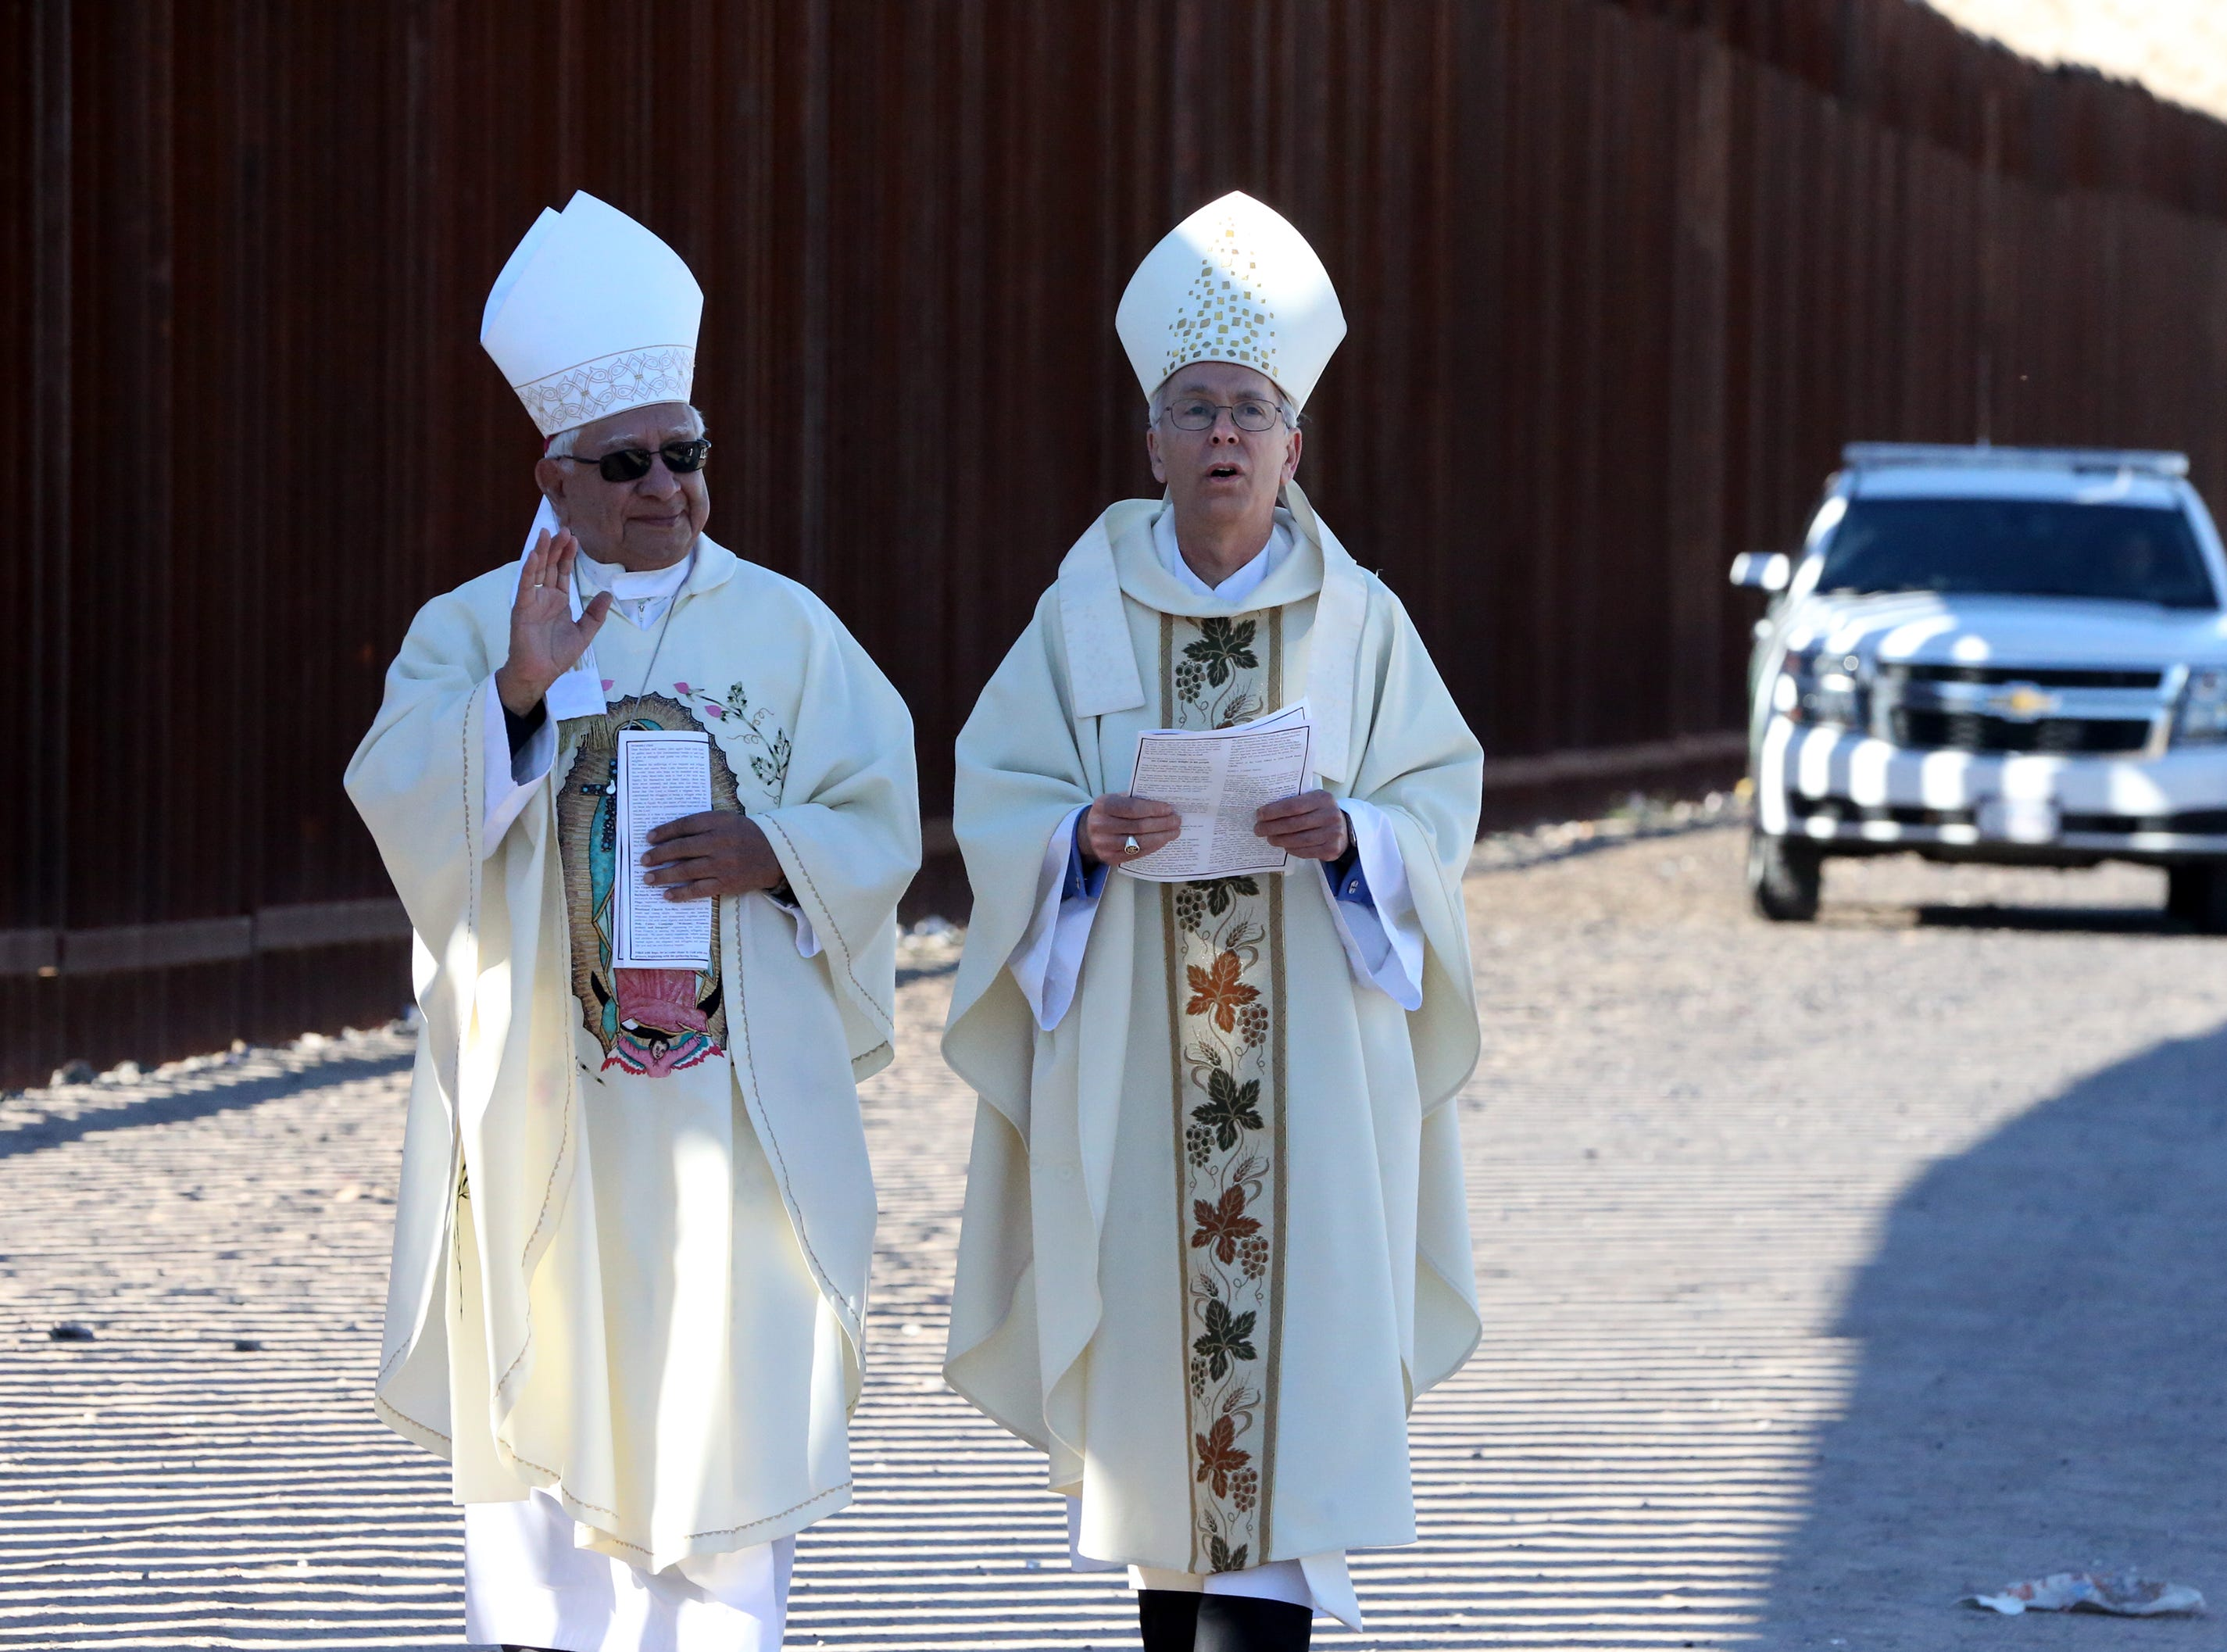 Las Cruces bishop emeritus Ricardo Ramirez, left, and El Paso bishop Mark Seitz take part in the annual Border Mass at the border fence in the Anapra area of Sunland Park, N.M. Saturday.